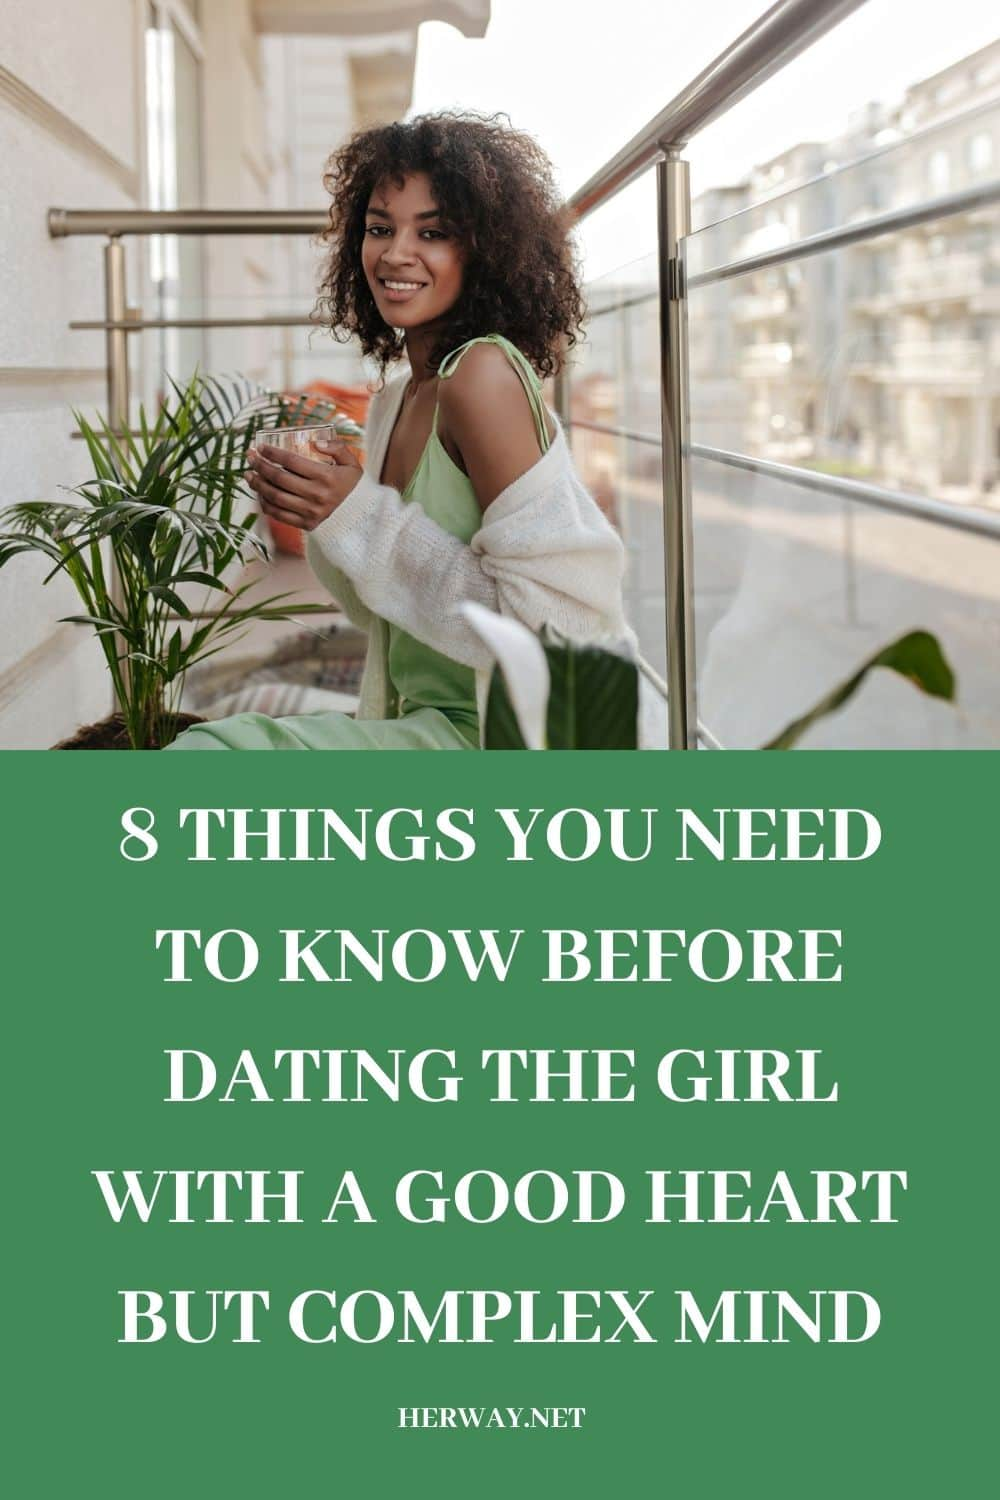 8 Things You Need To Know Before Dating the Girl With A Good Heart But Complex Mind